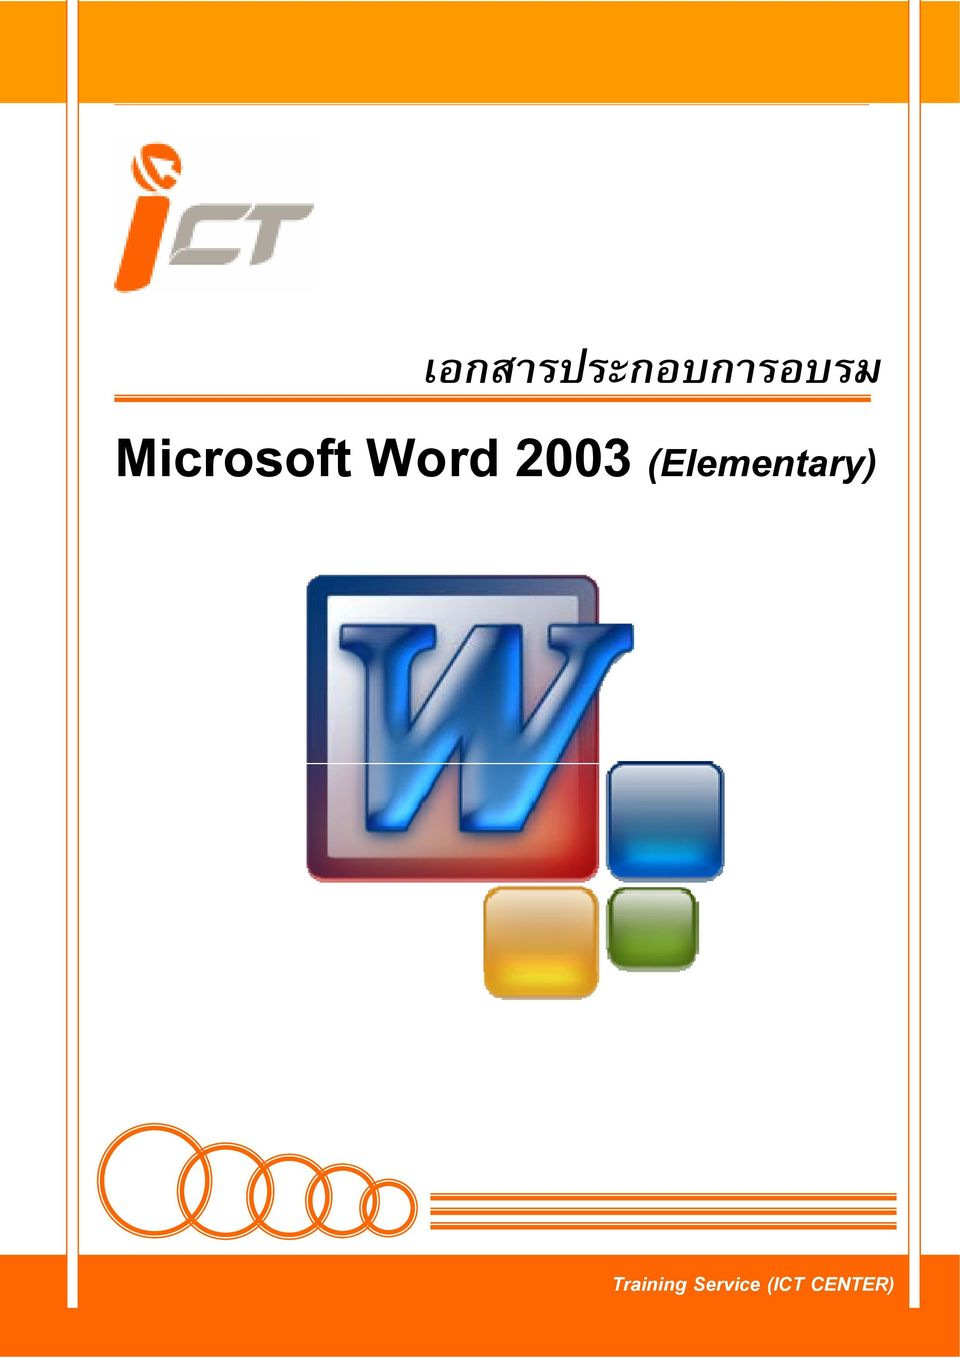 (Elementary) Training Service (ICT